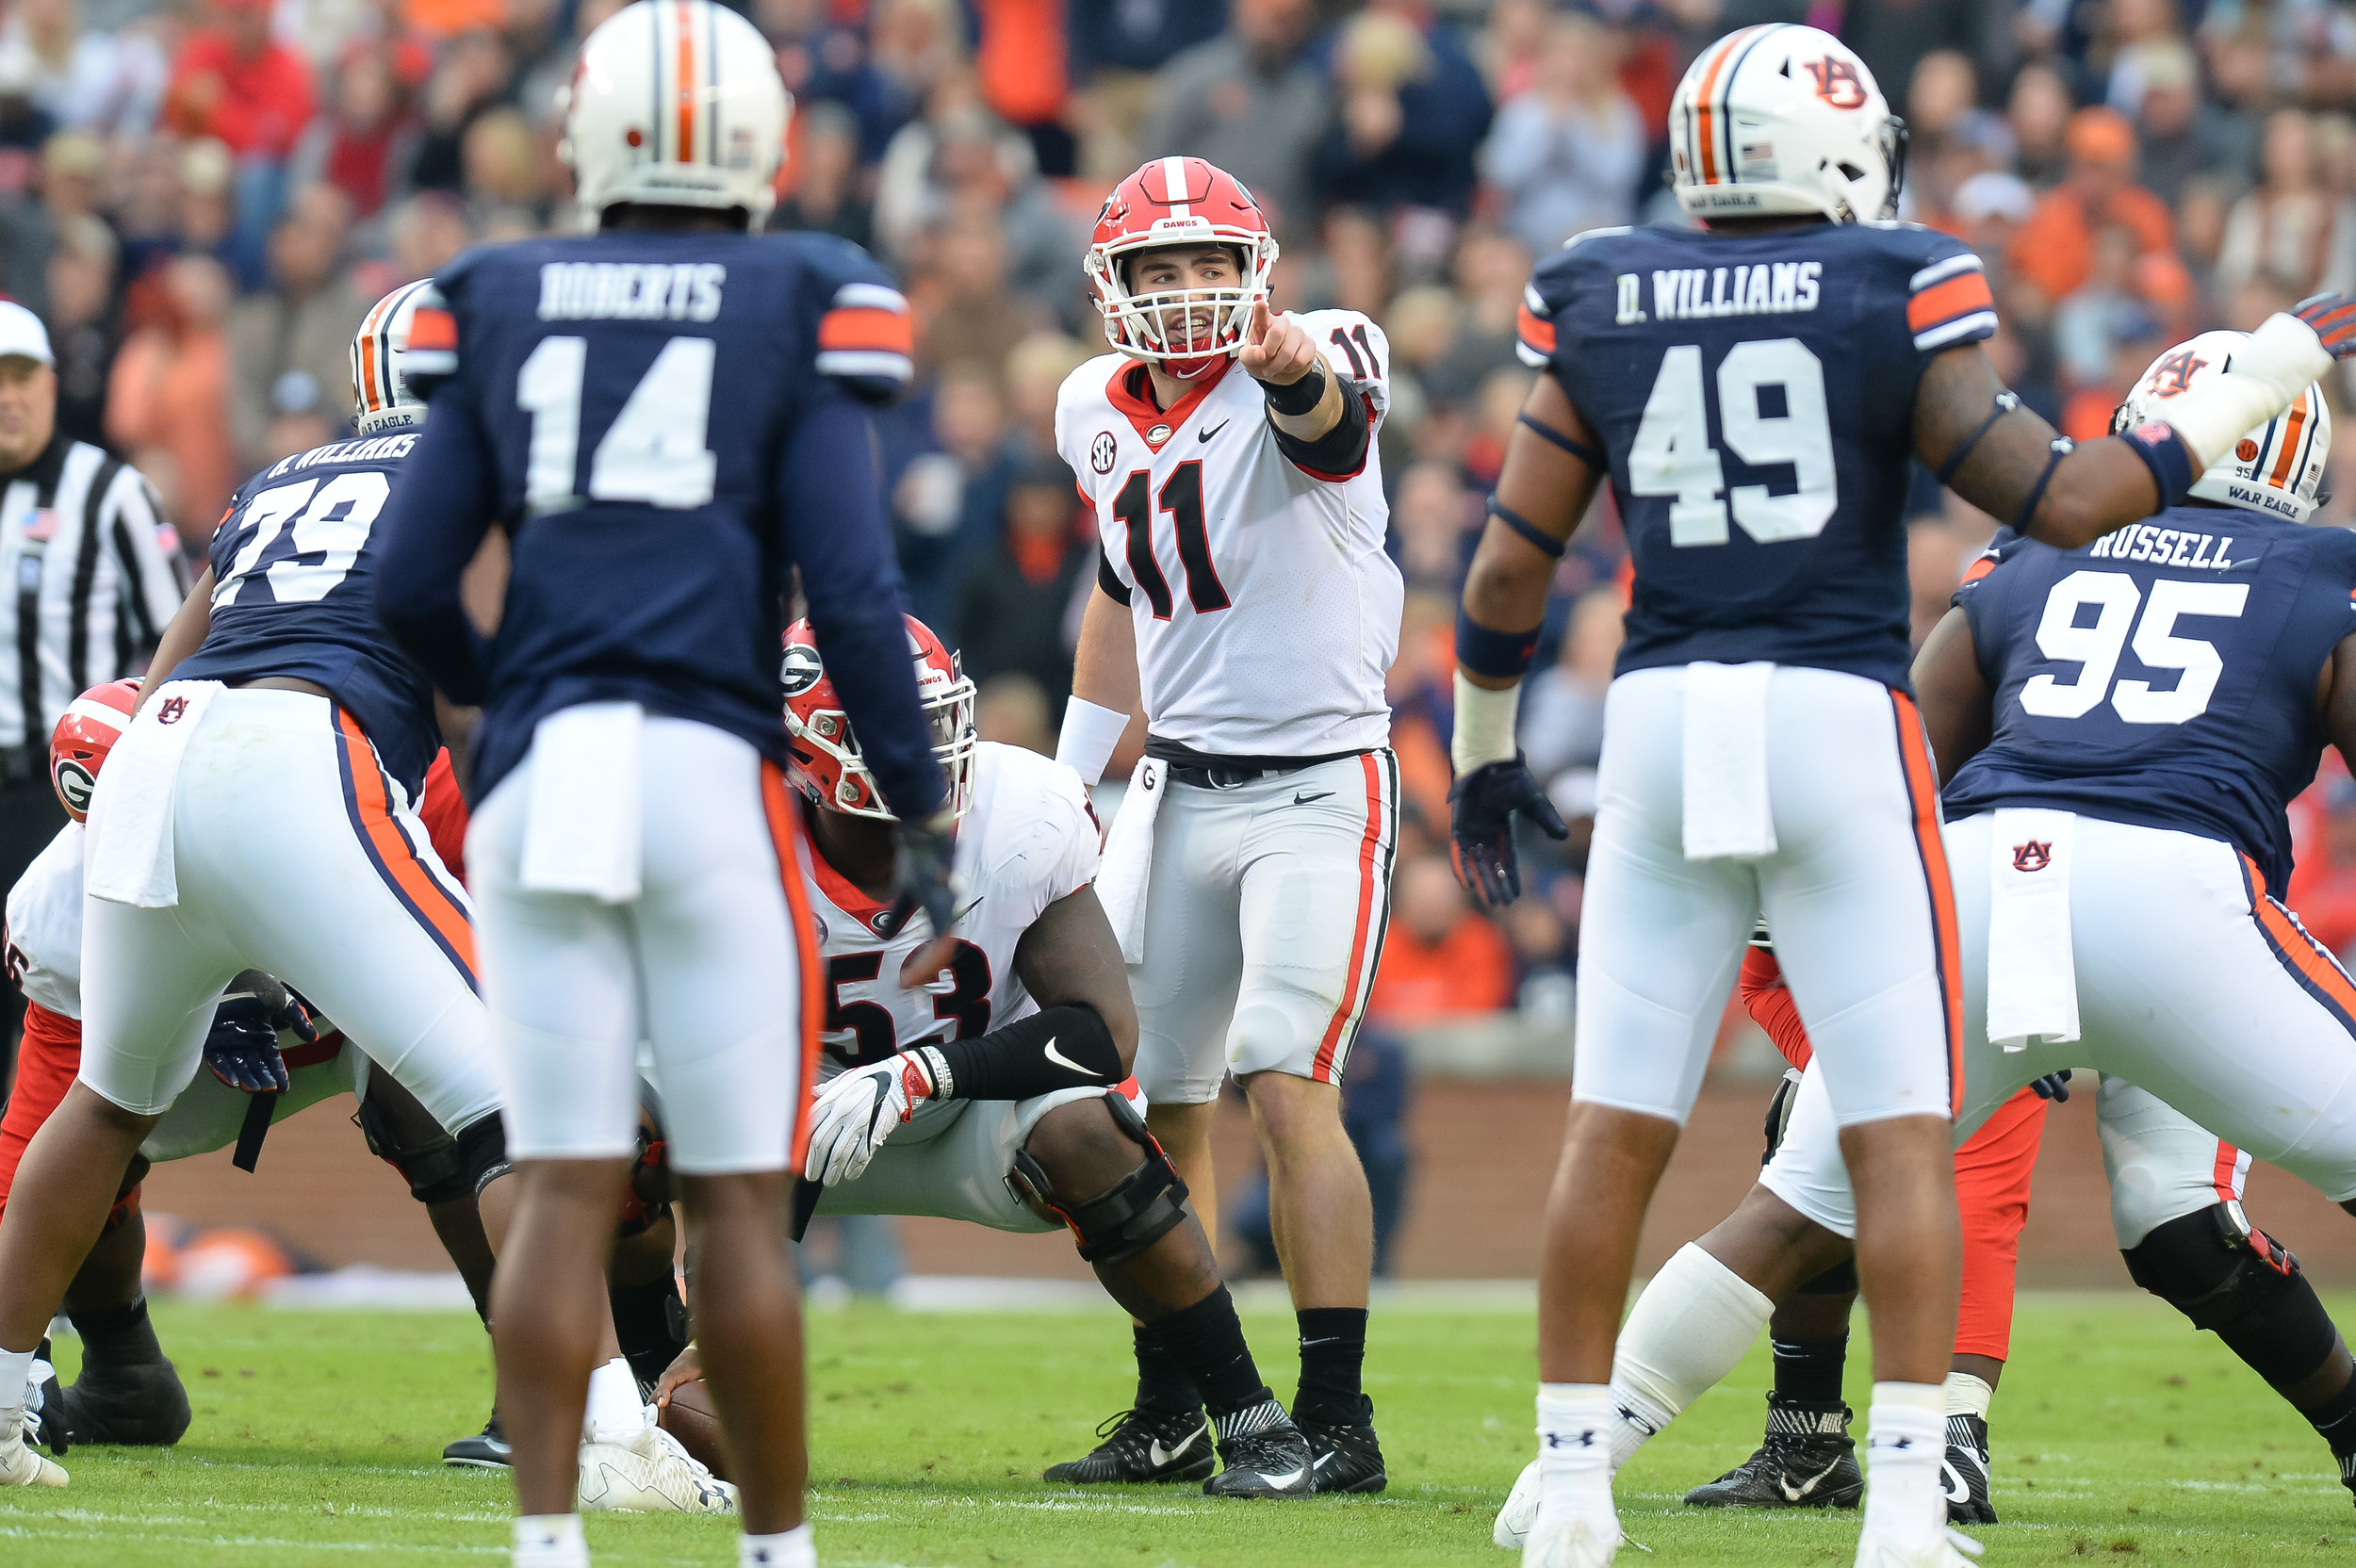 Georgia Bulldogs quarterback Jake Fromm (11) directs the offense during the first half of Saturday's game, at Jordan-Hare Stadium.